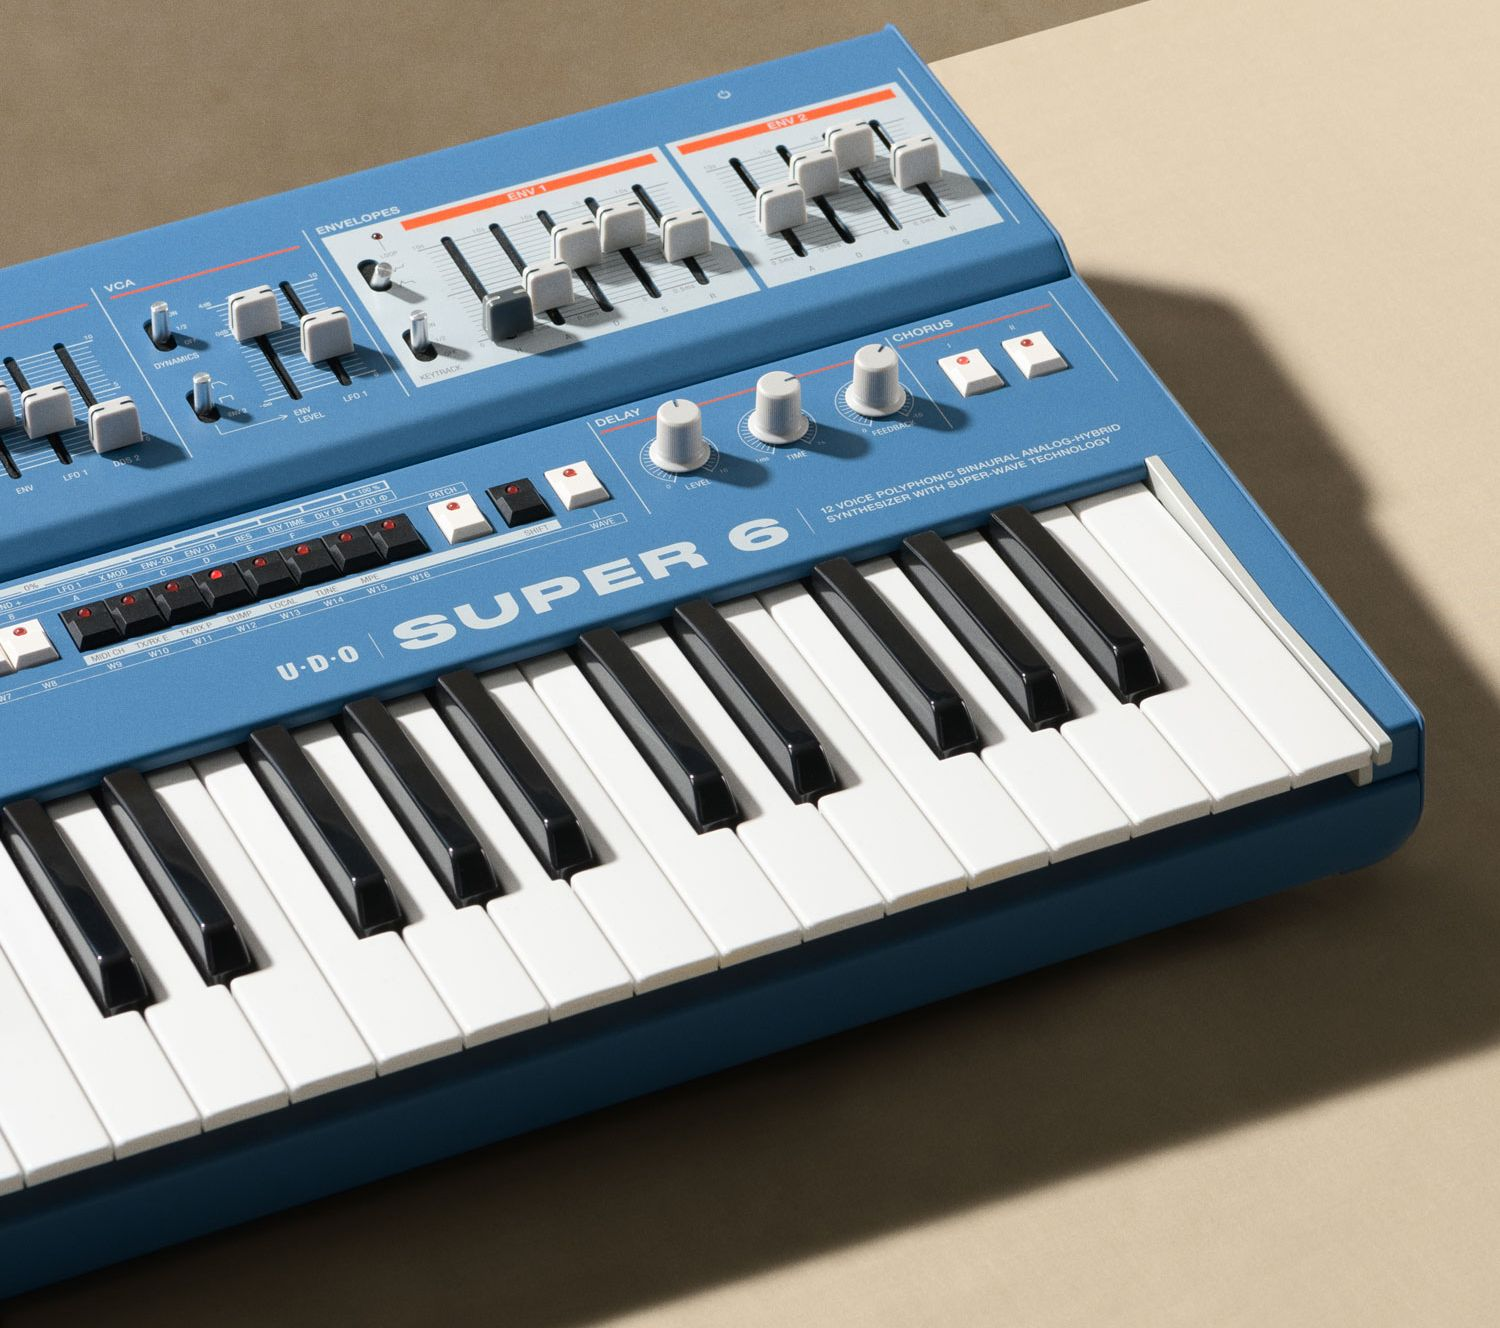 The biggest music gear news and best videos to watch from NAMM